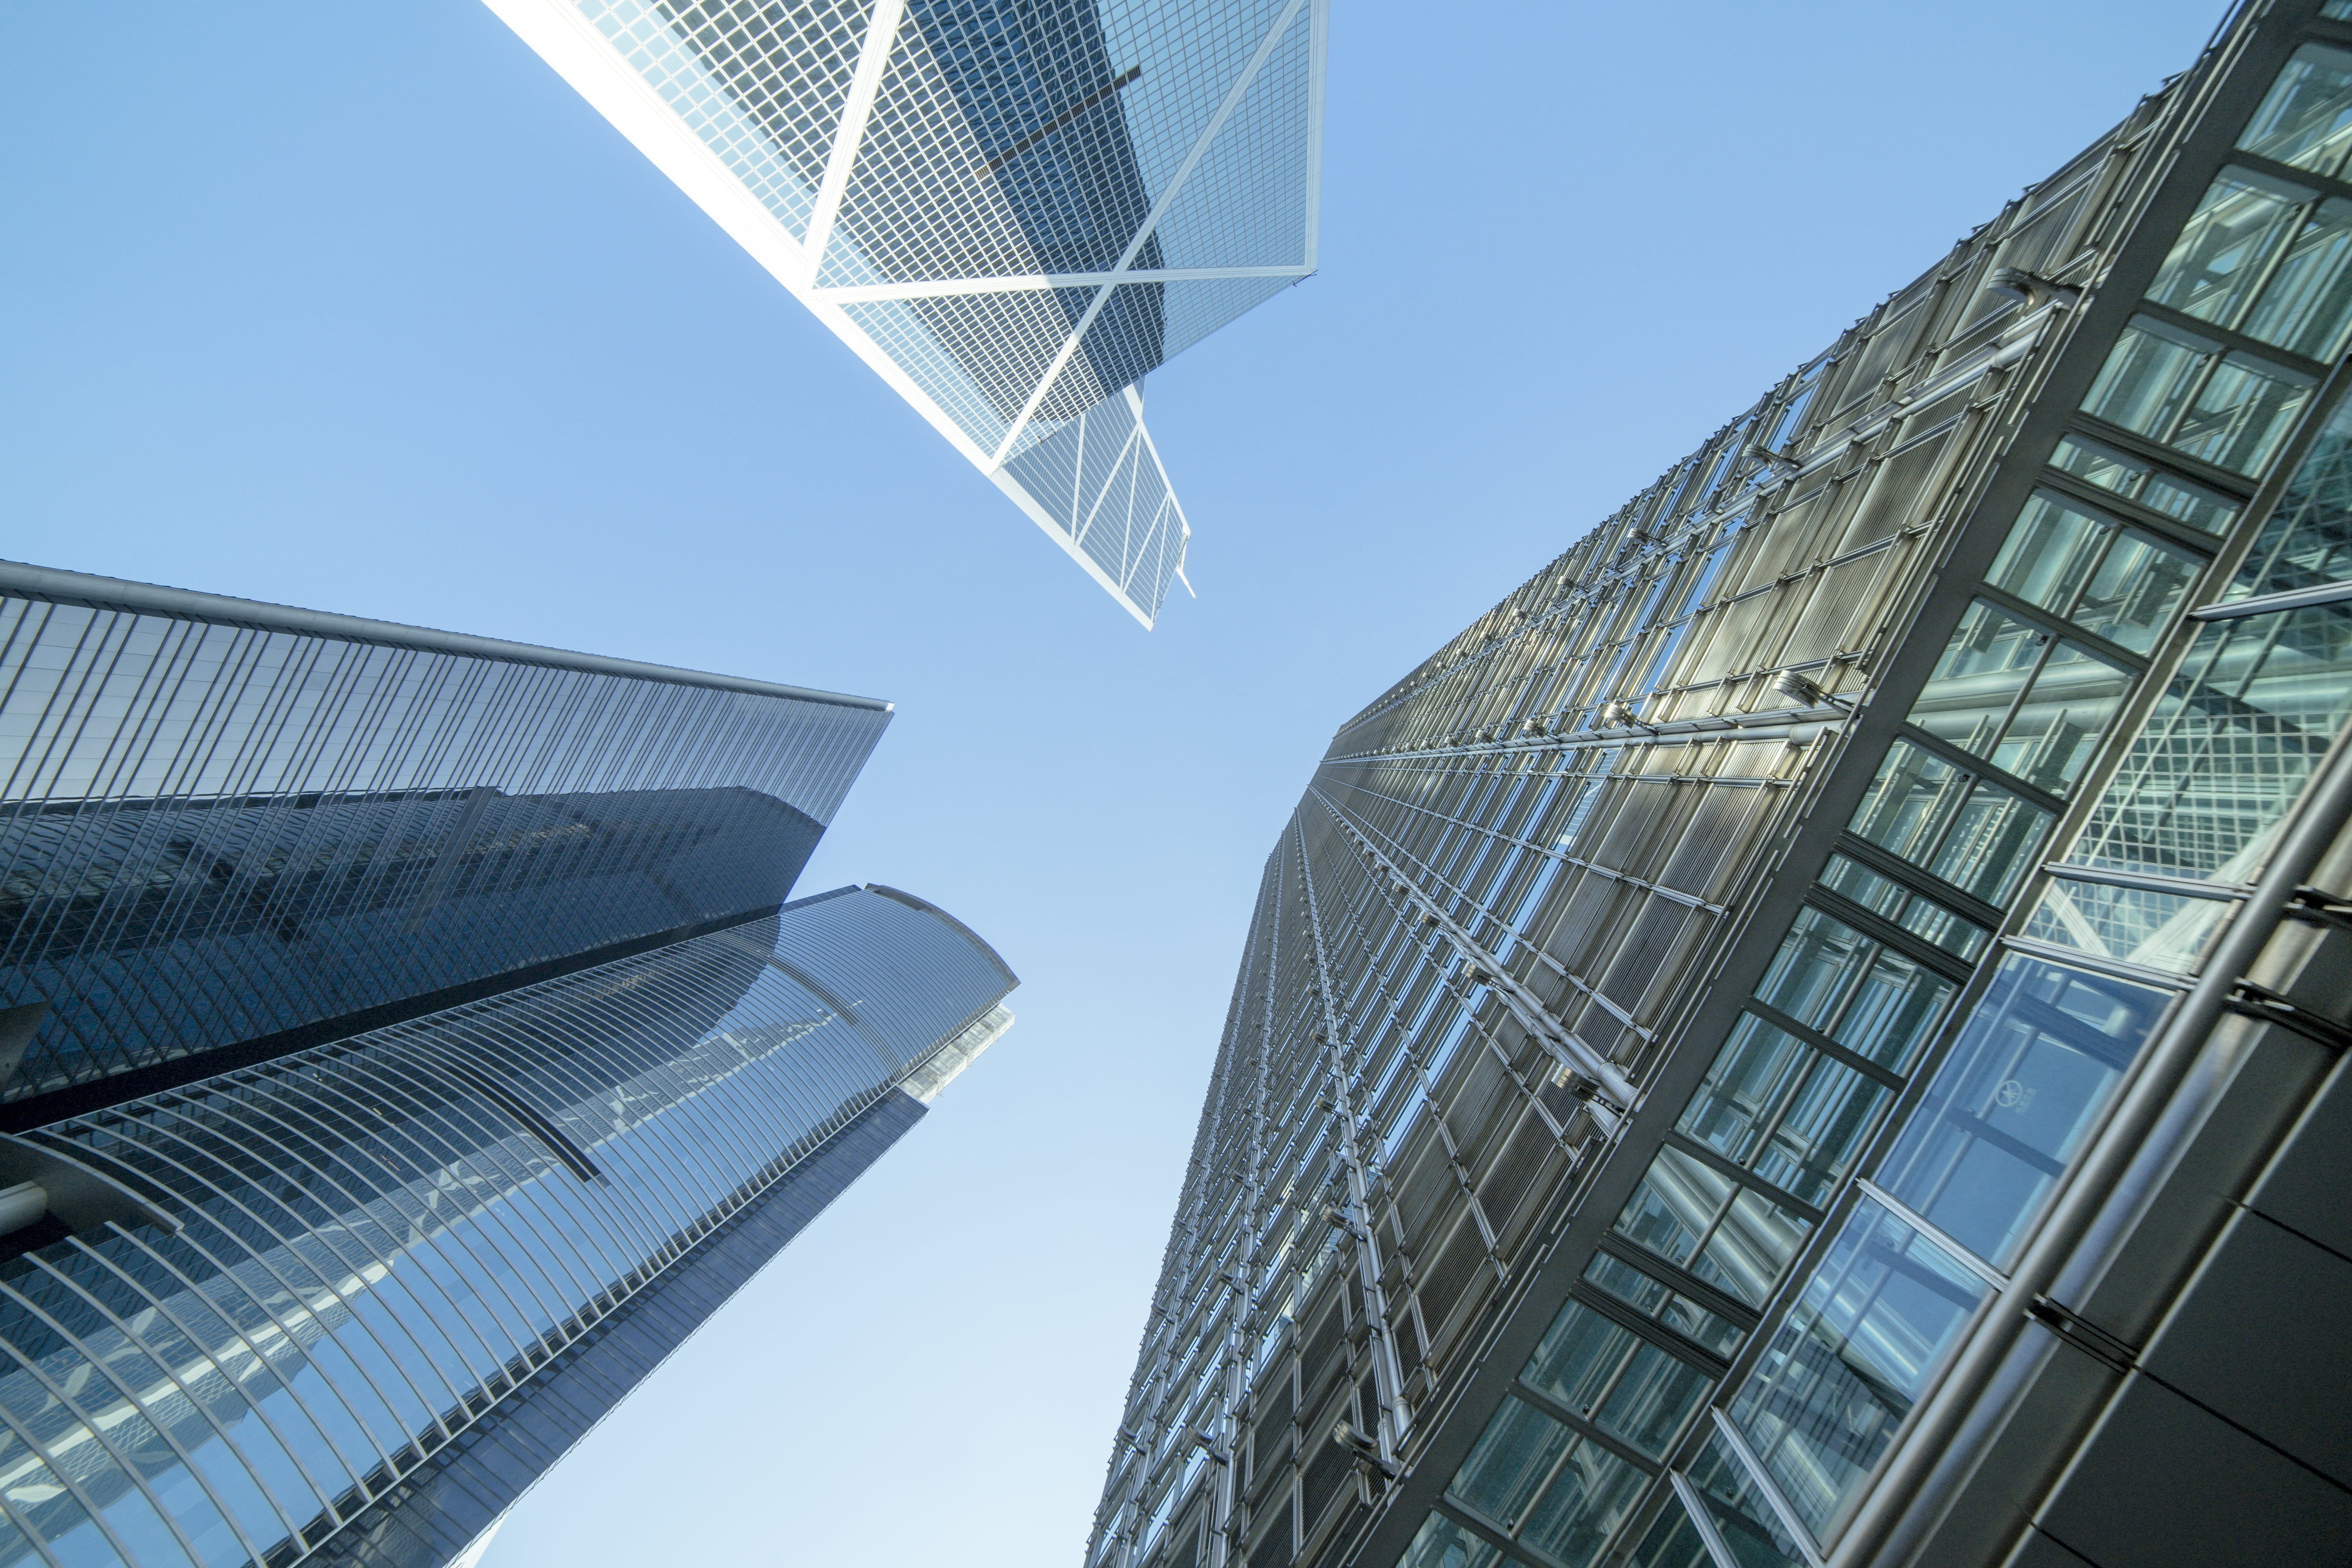 Low Angle Photography of Buildings Under Blue and White Sky